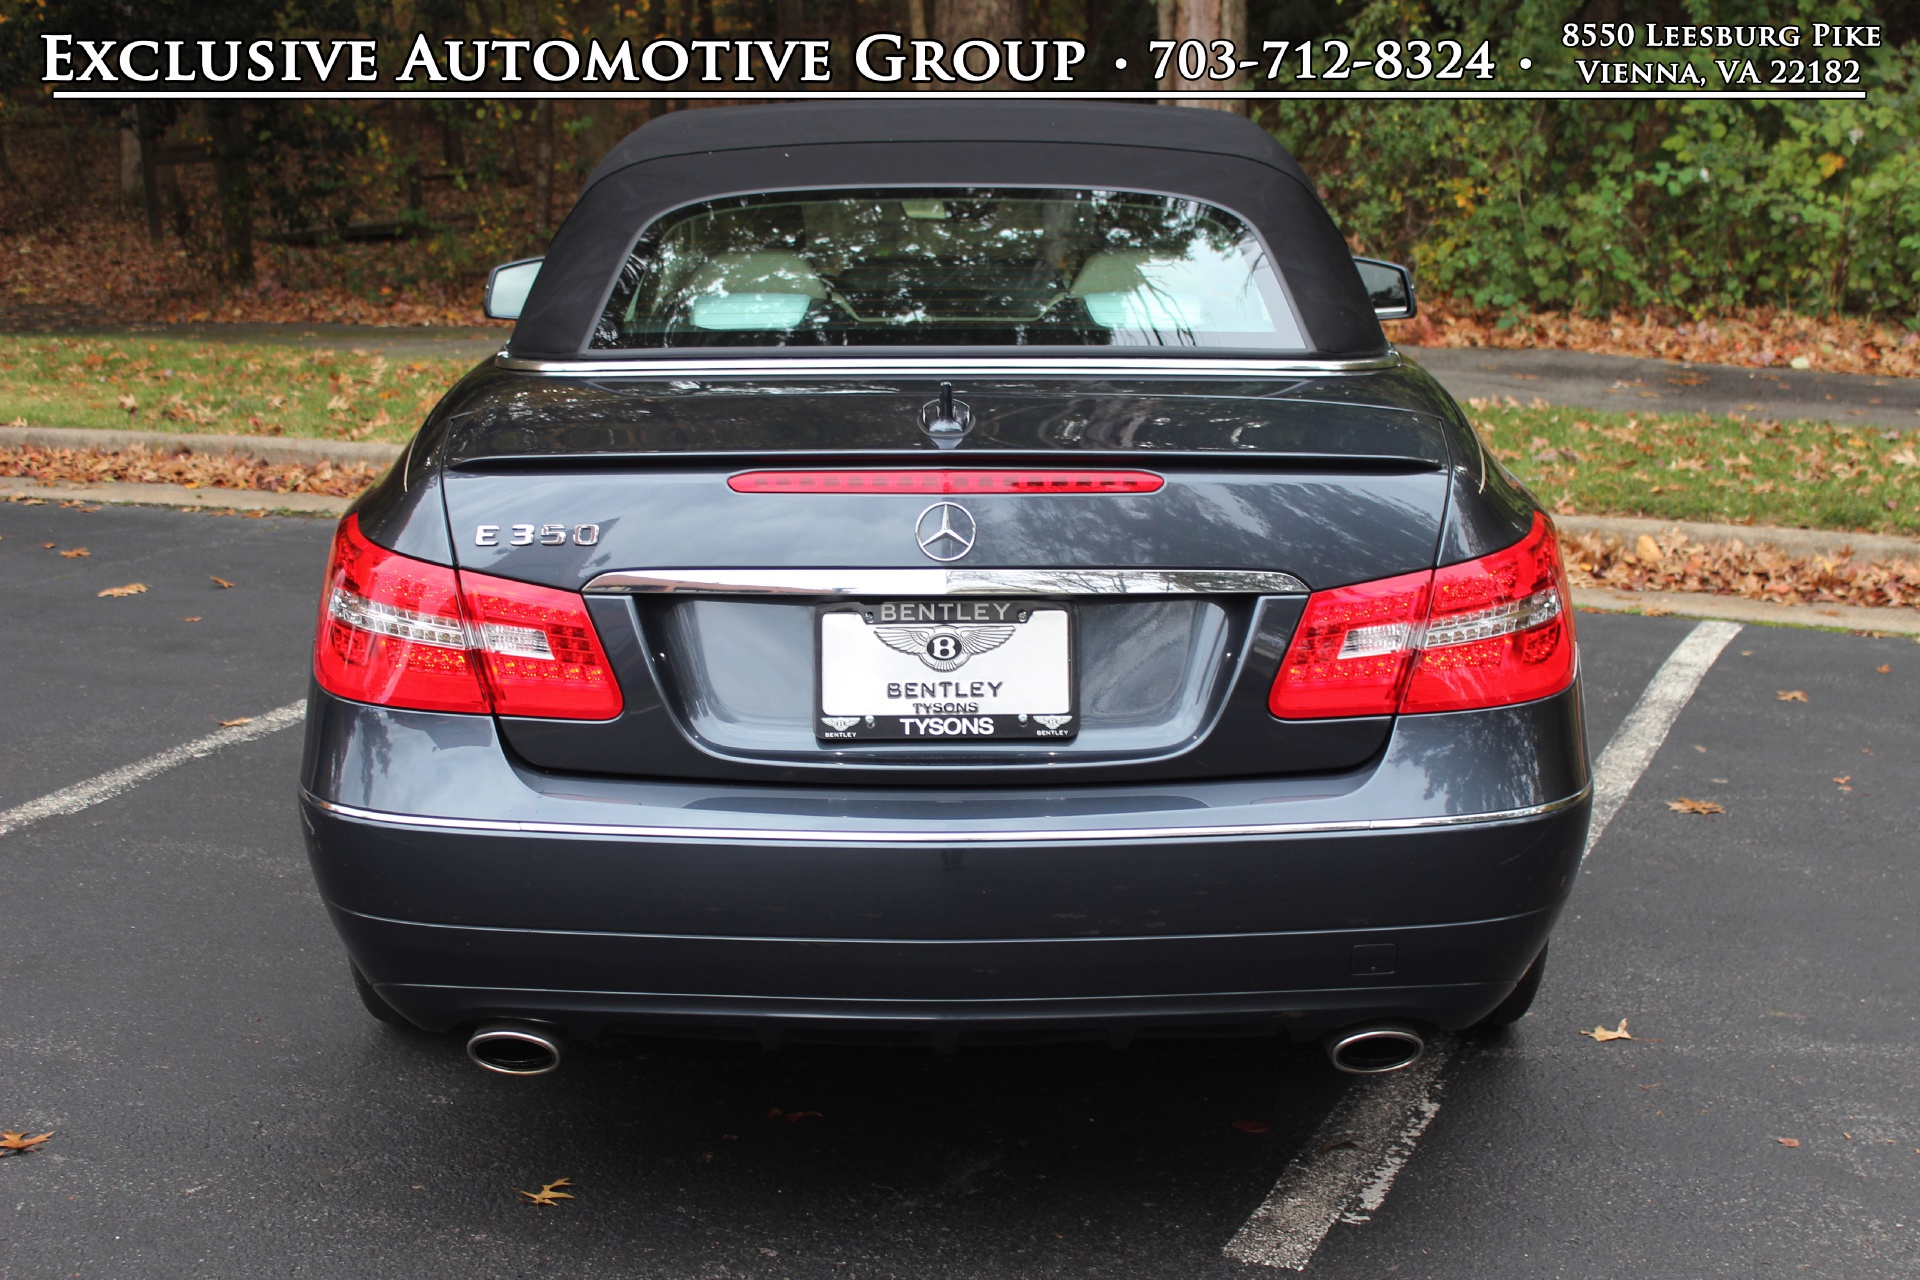 2013 mercedes benz e350 cabriolet stock p208908 for sale for Mercedes benz dealers in va